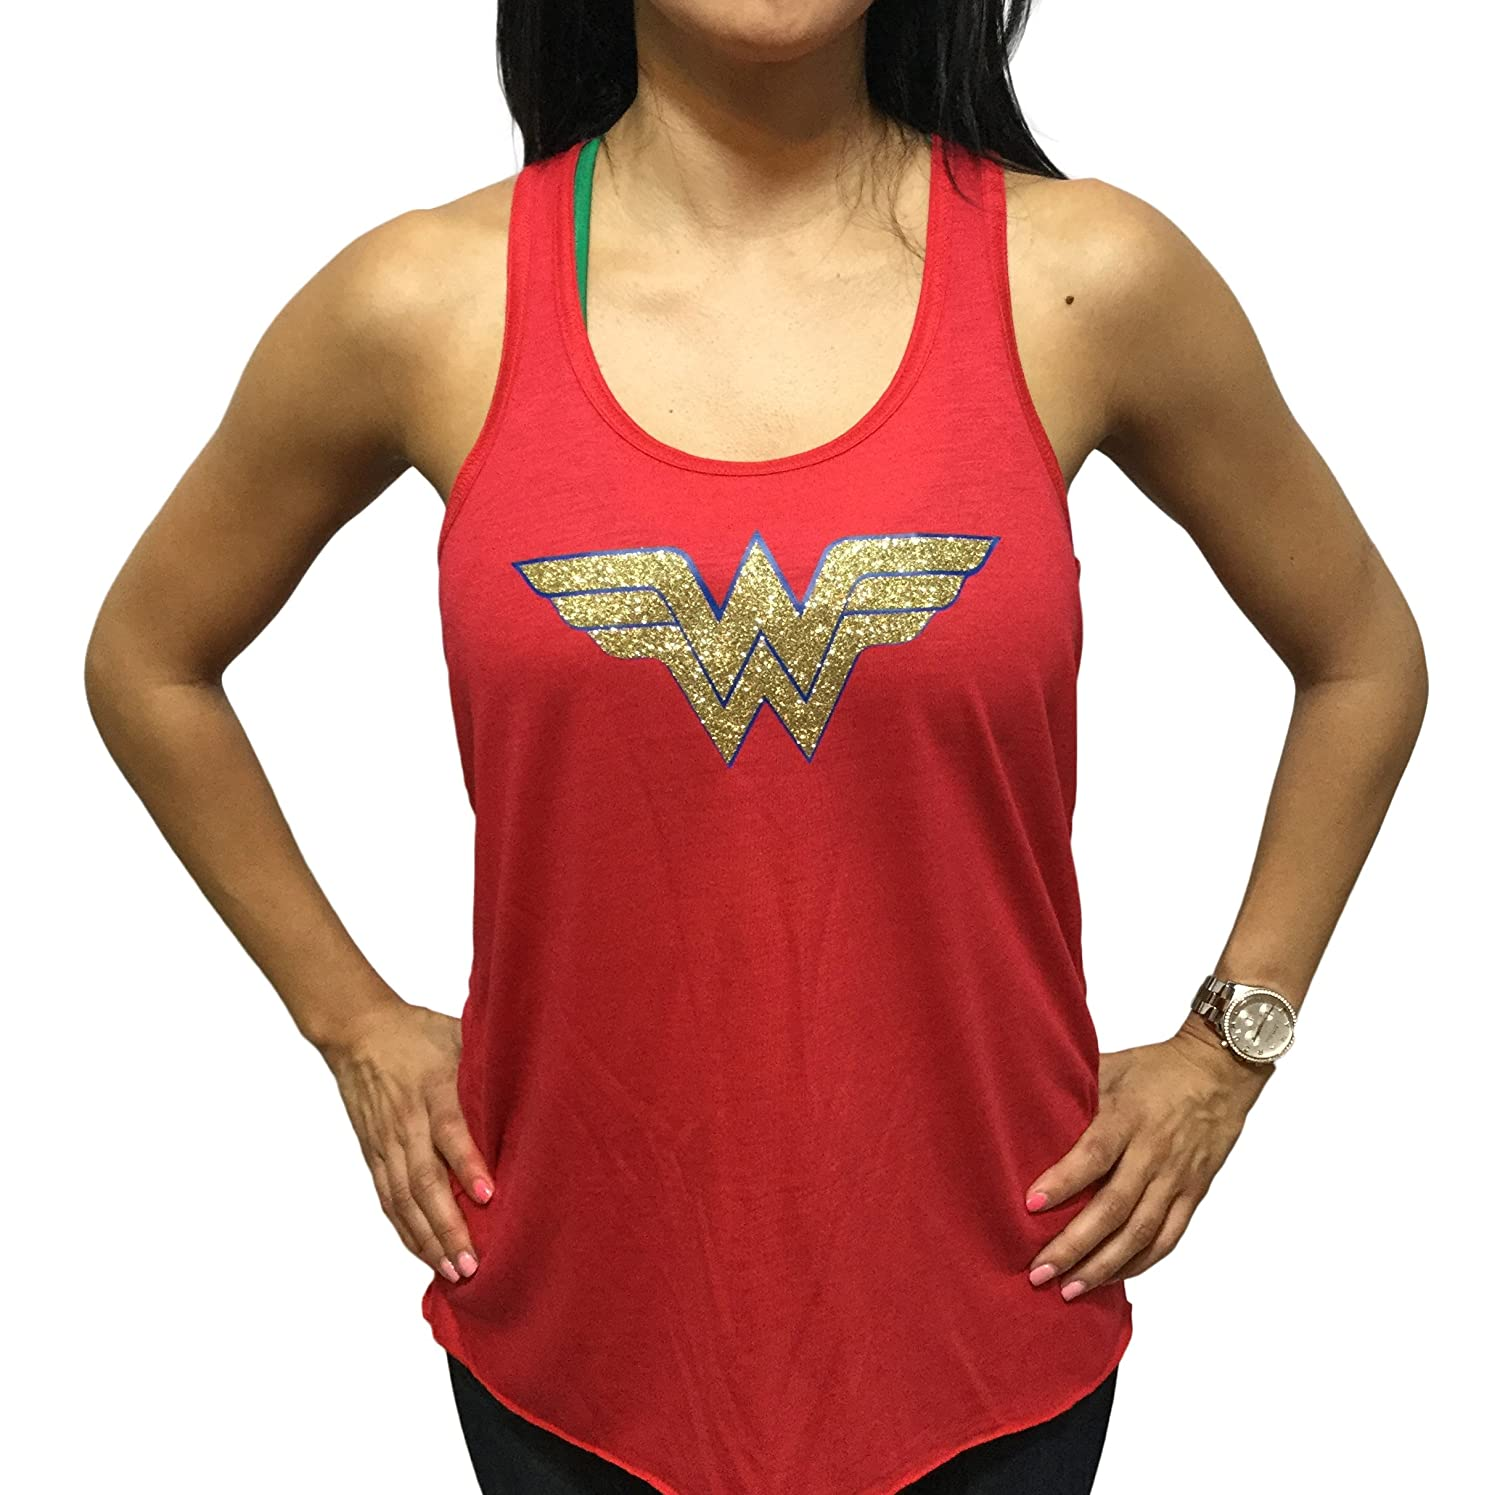 Devious Apparel Wonder Woman Flowy Womens Youth Tank Top Glitter Polyester Blend Cover Up